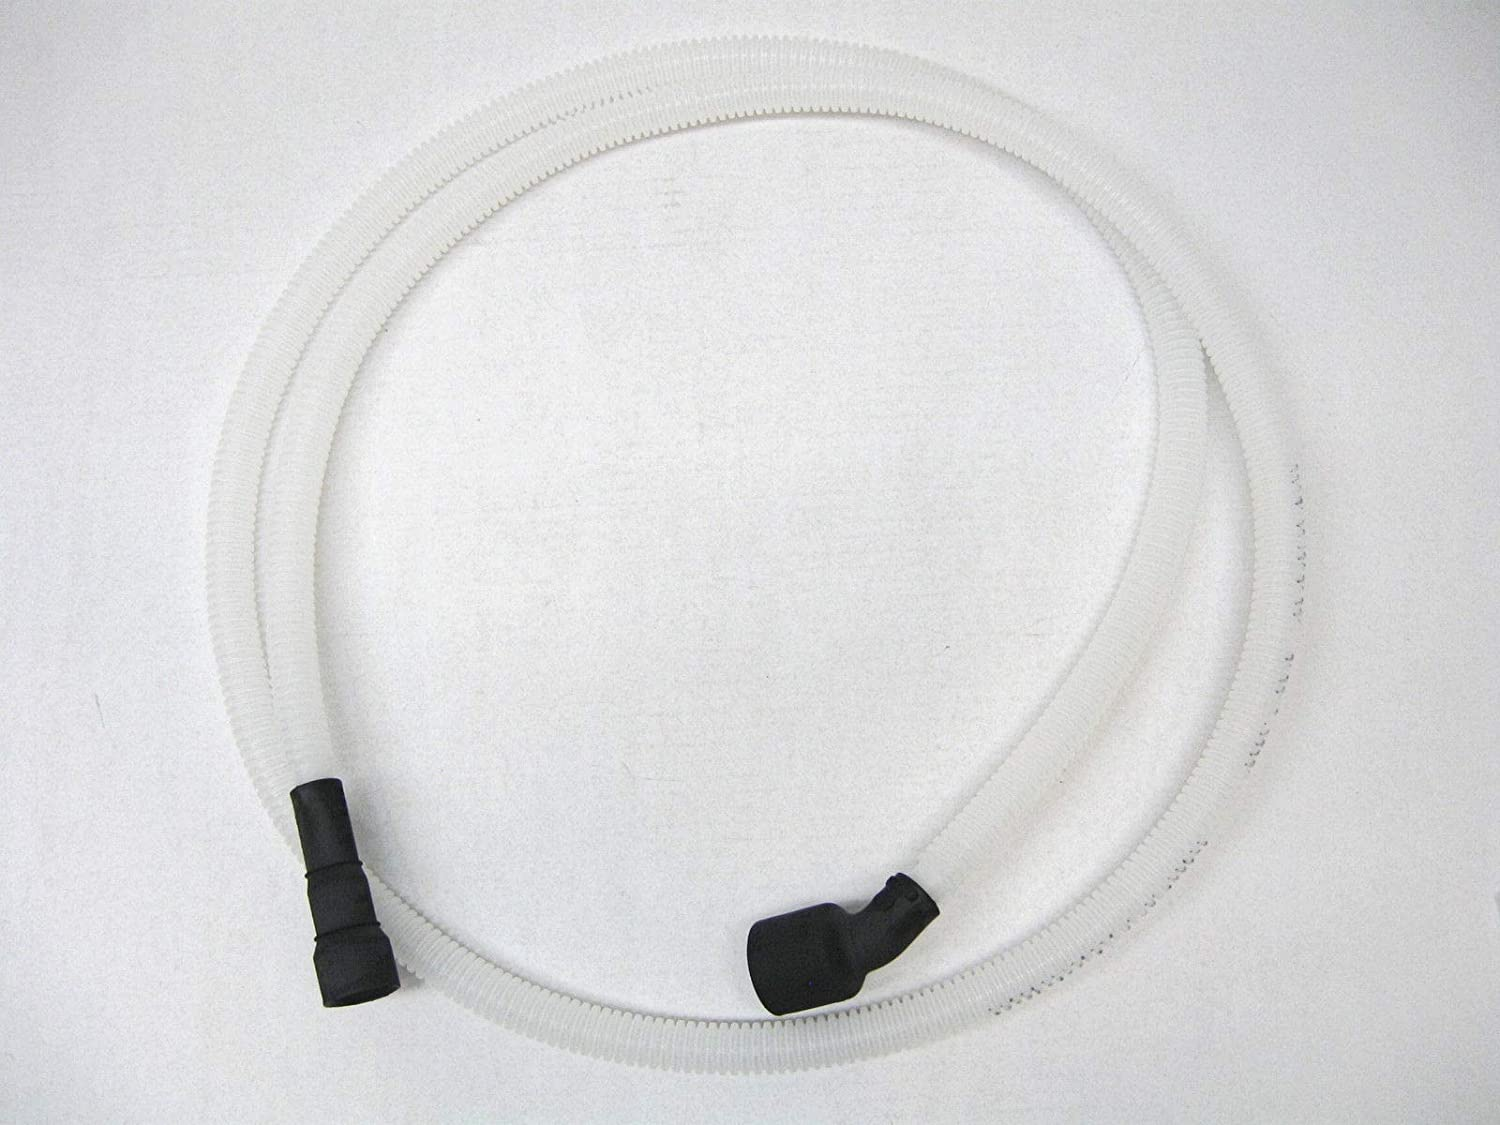 RB 807117001 Dishwasher Drain Hose A for Frigidaire Discount mail order Industry No. 1 Electrolux